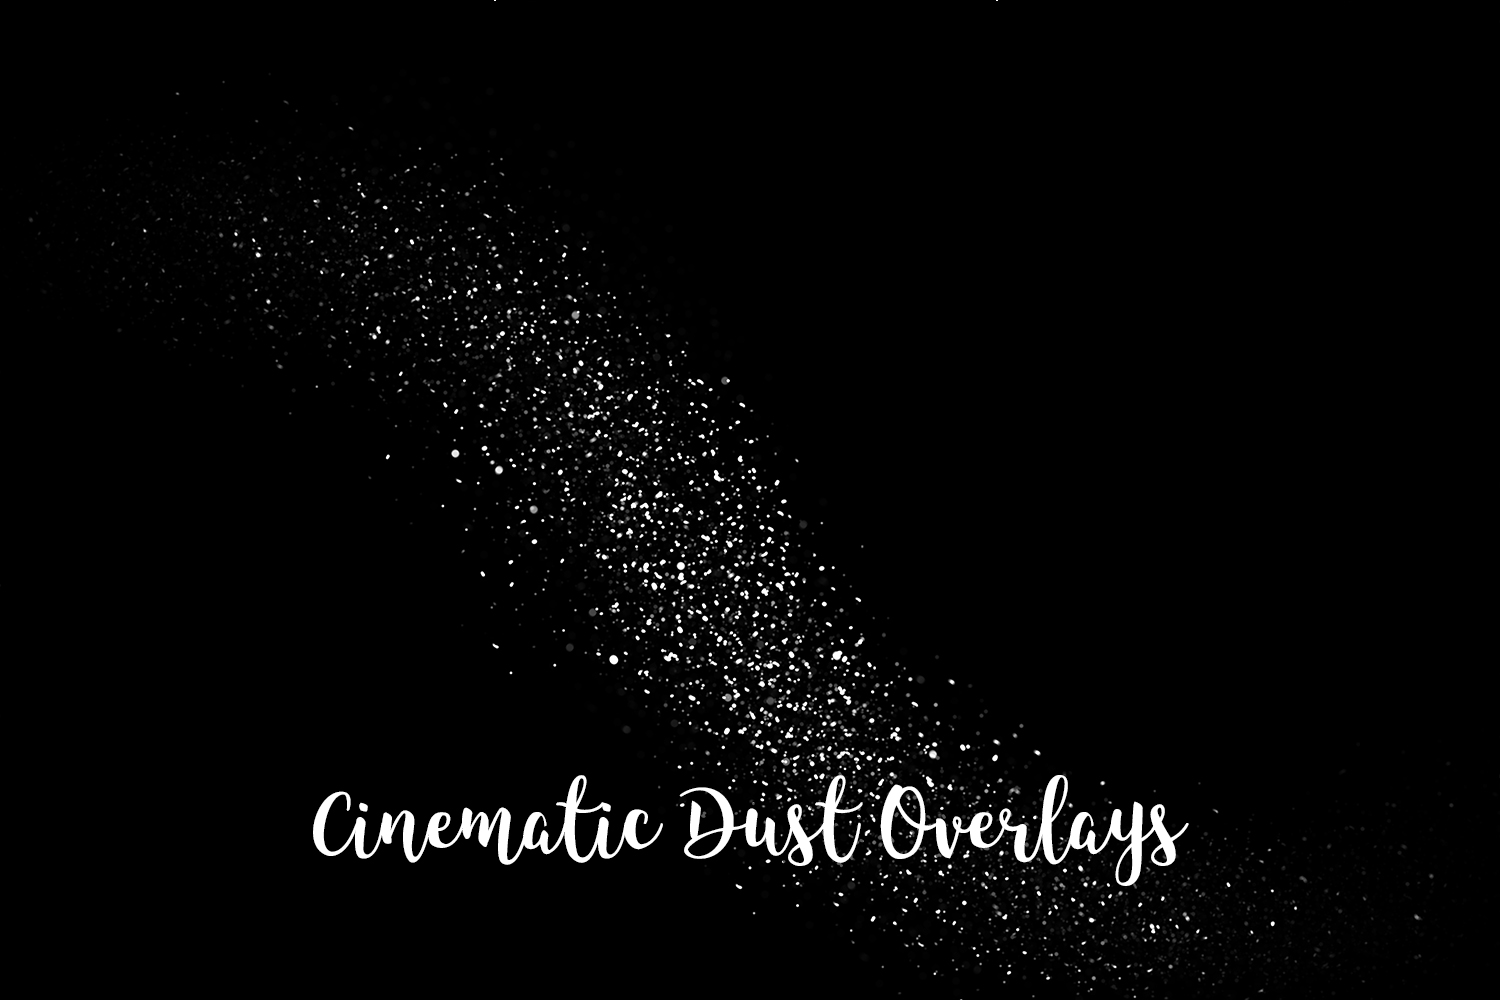 Cinematic Dust Photo Overlays, Bokeh Light Effects example image 6